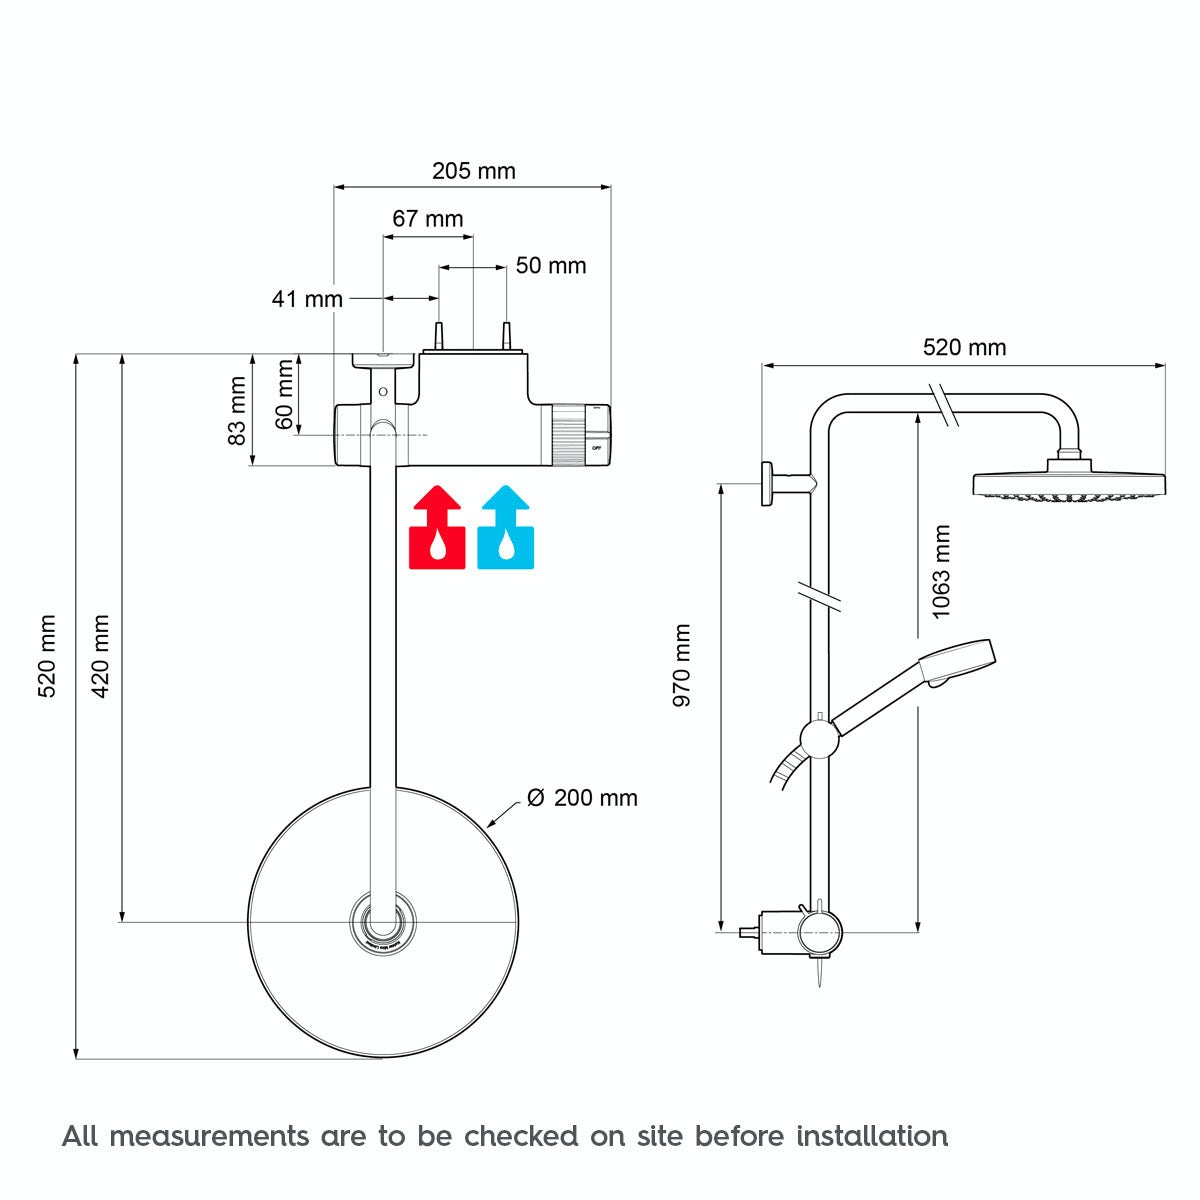 Dimensions for Mira Agile ERD thermostatic mixer shower